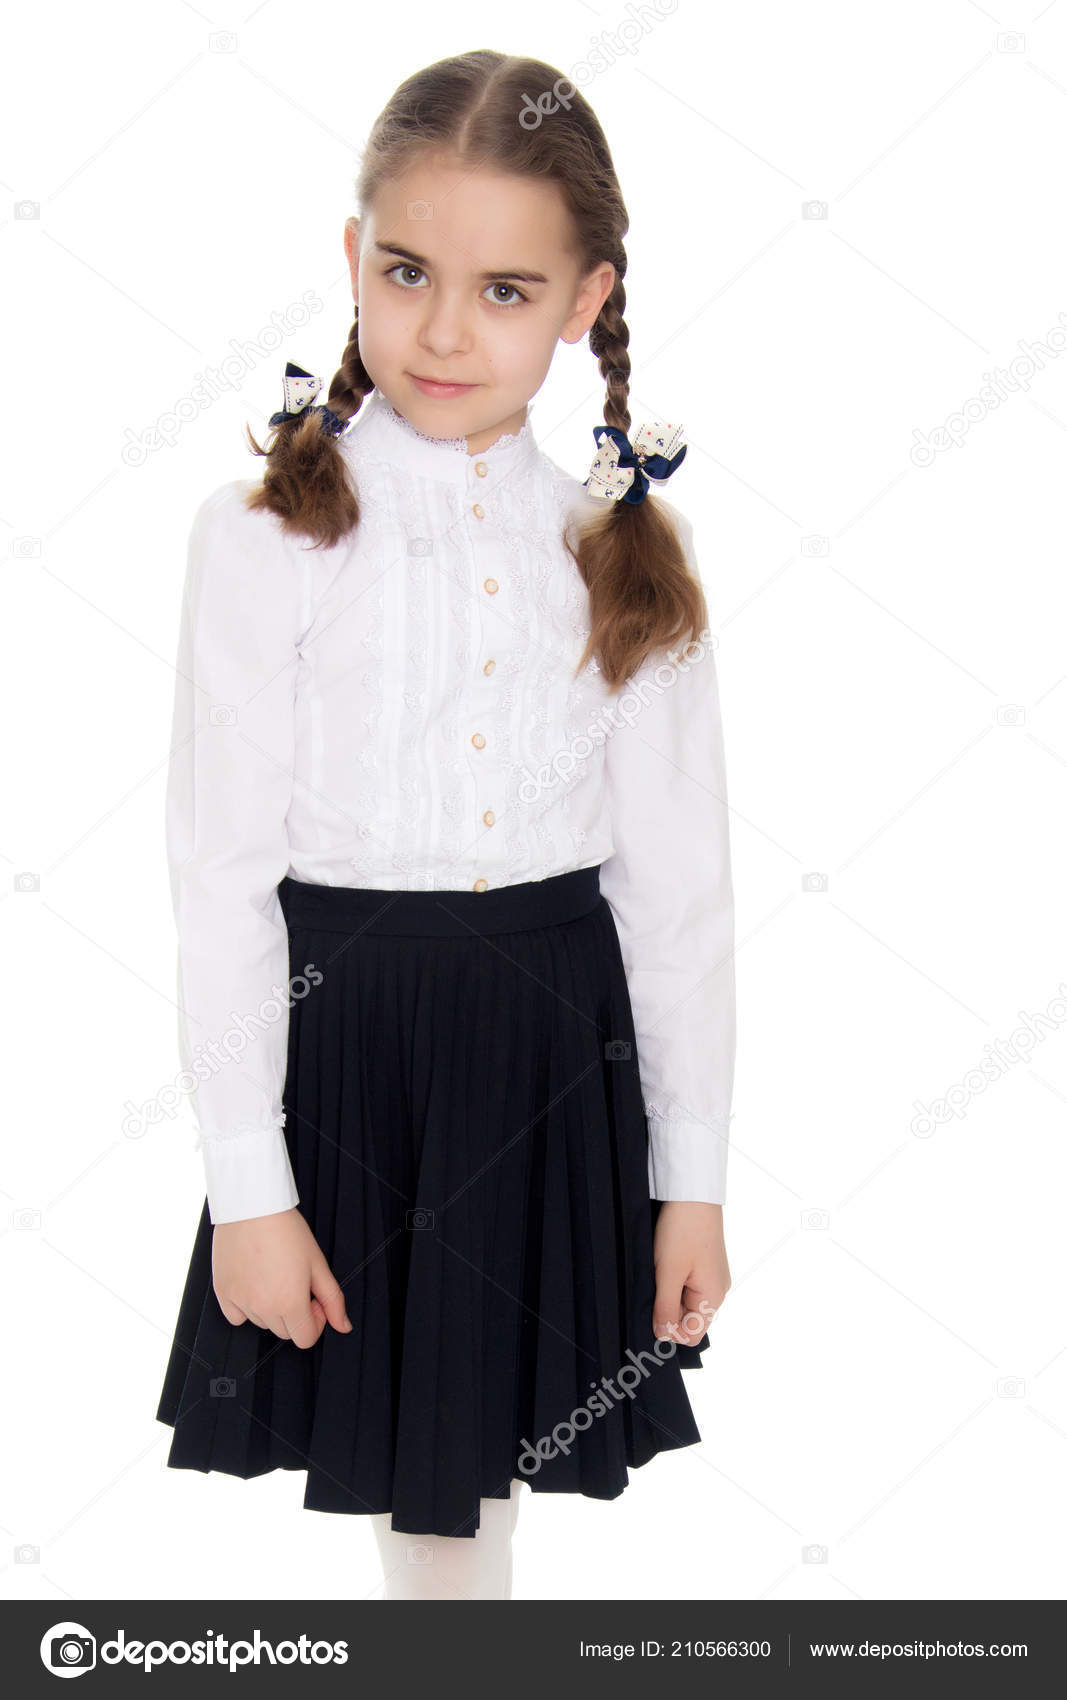 f5feac85e8 ... a white blouse and black long skirt, with neatly braided pigtails on  her head.She is standing right in front of the camera.Isolated on white  background.